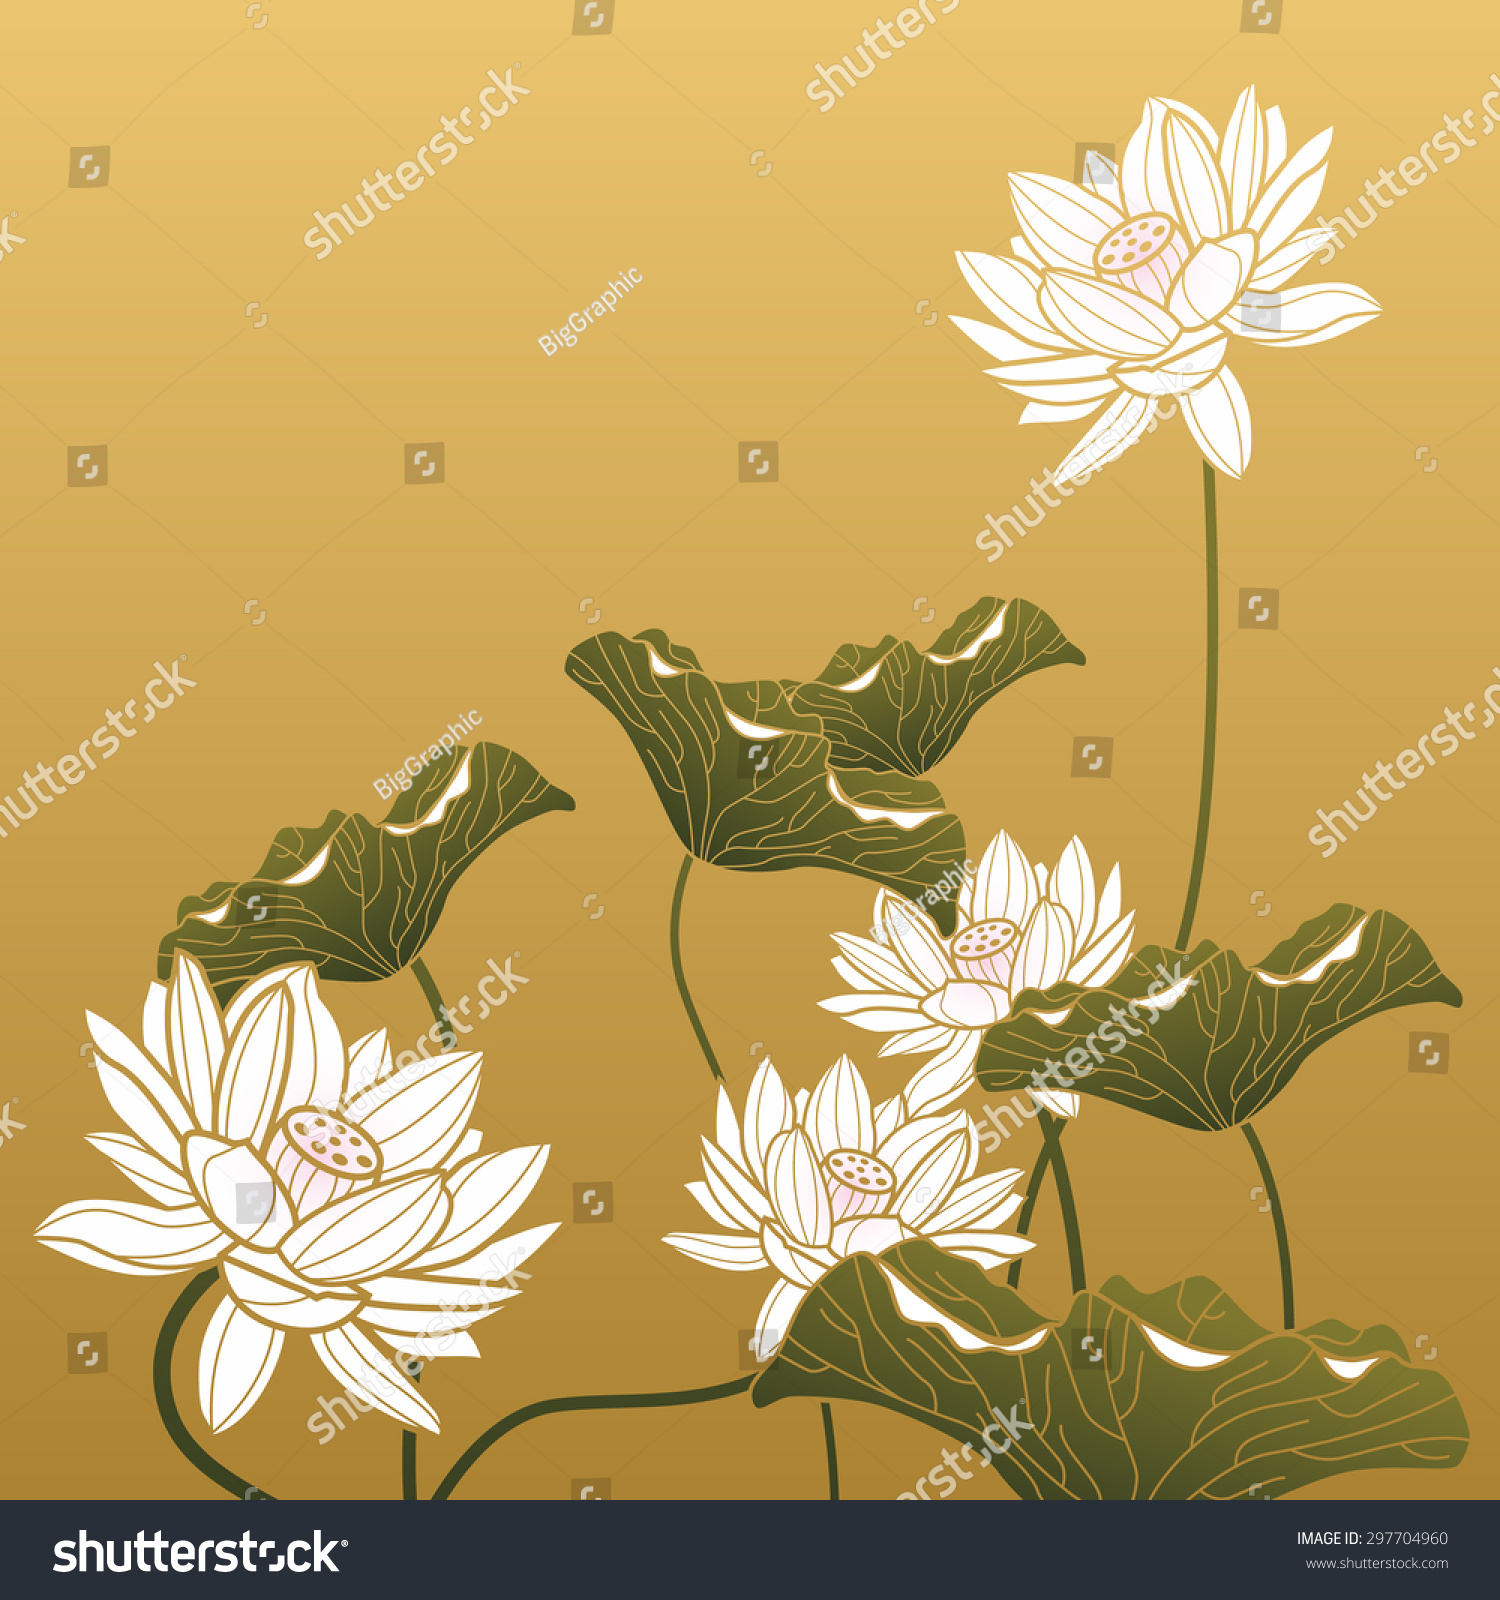 Chinese painting lotus flower stock vector royalty free 297704960 chinese painting lotus flower izmirmasajfo